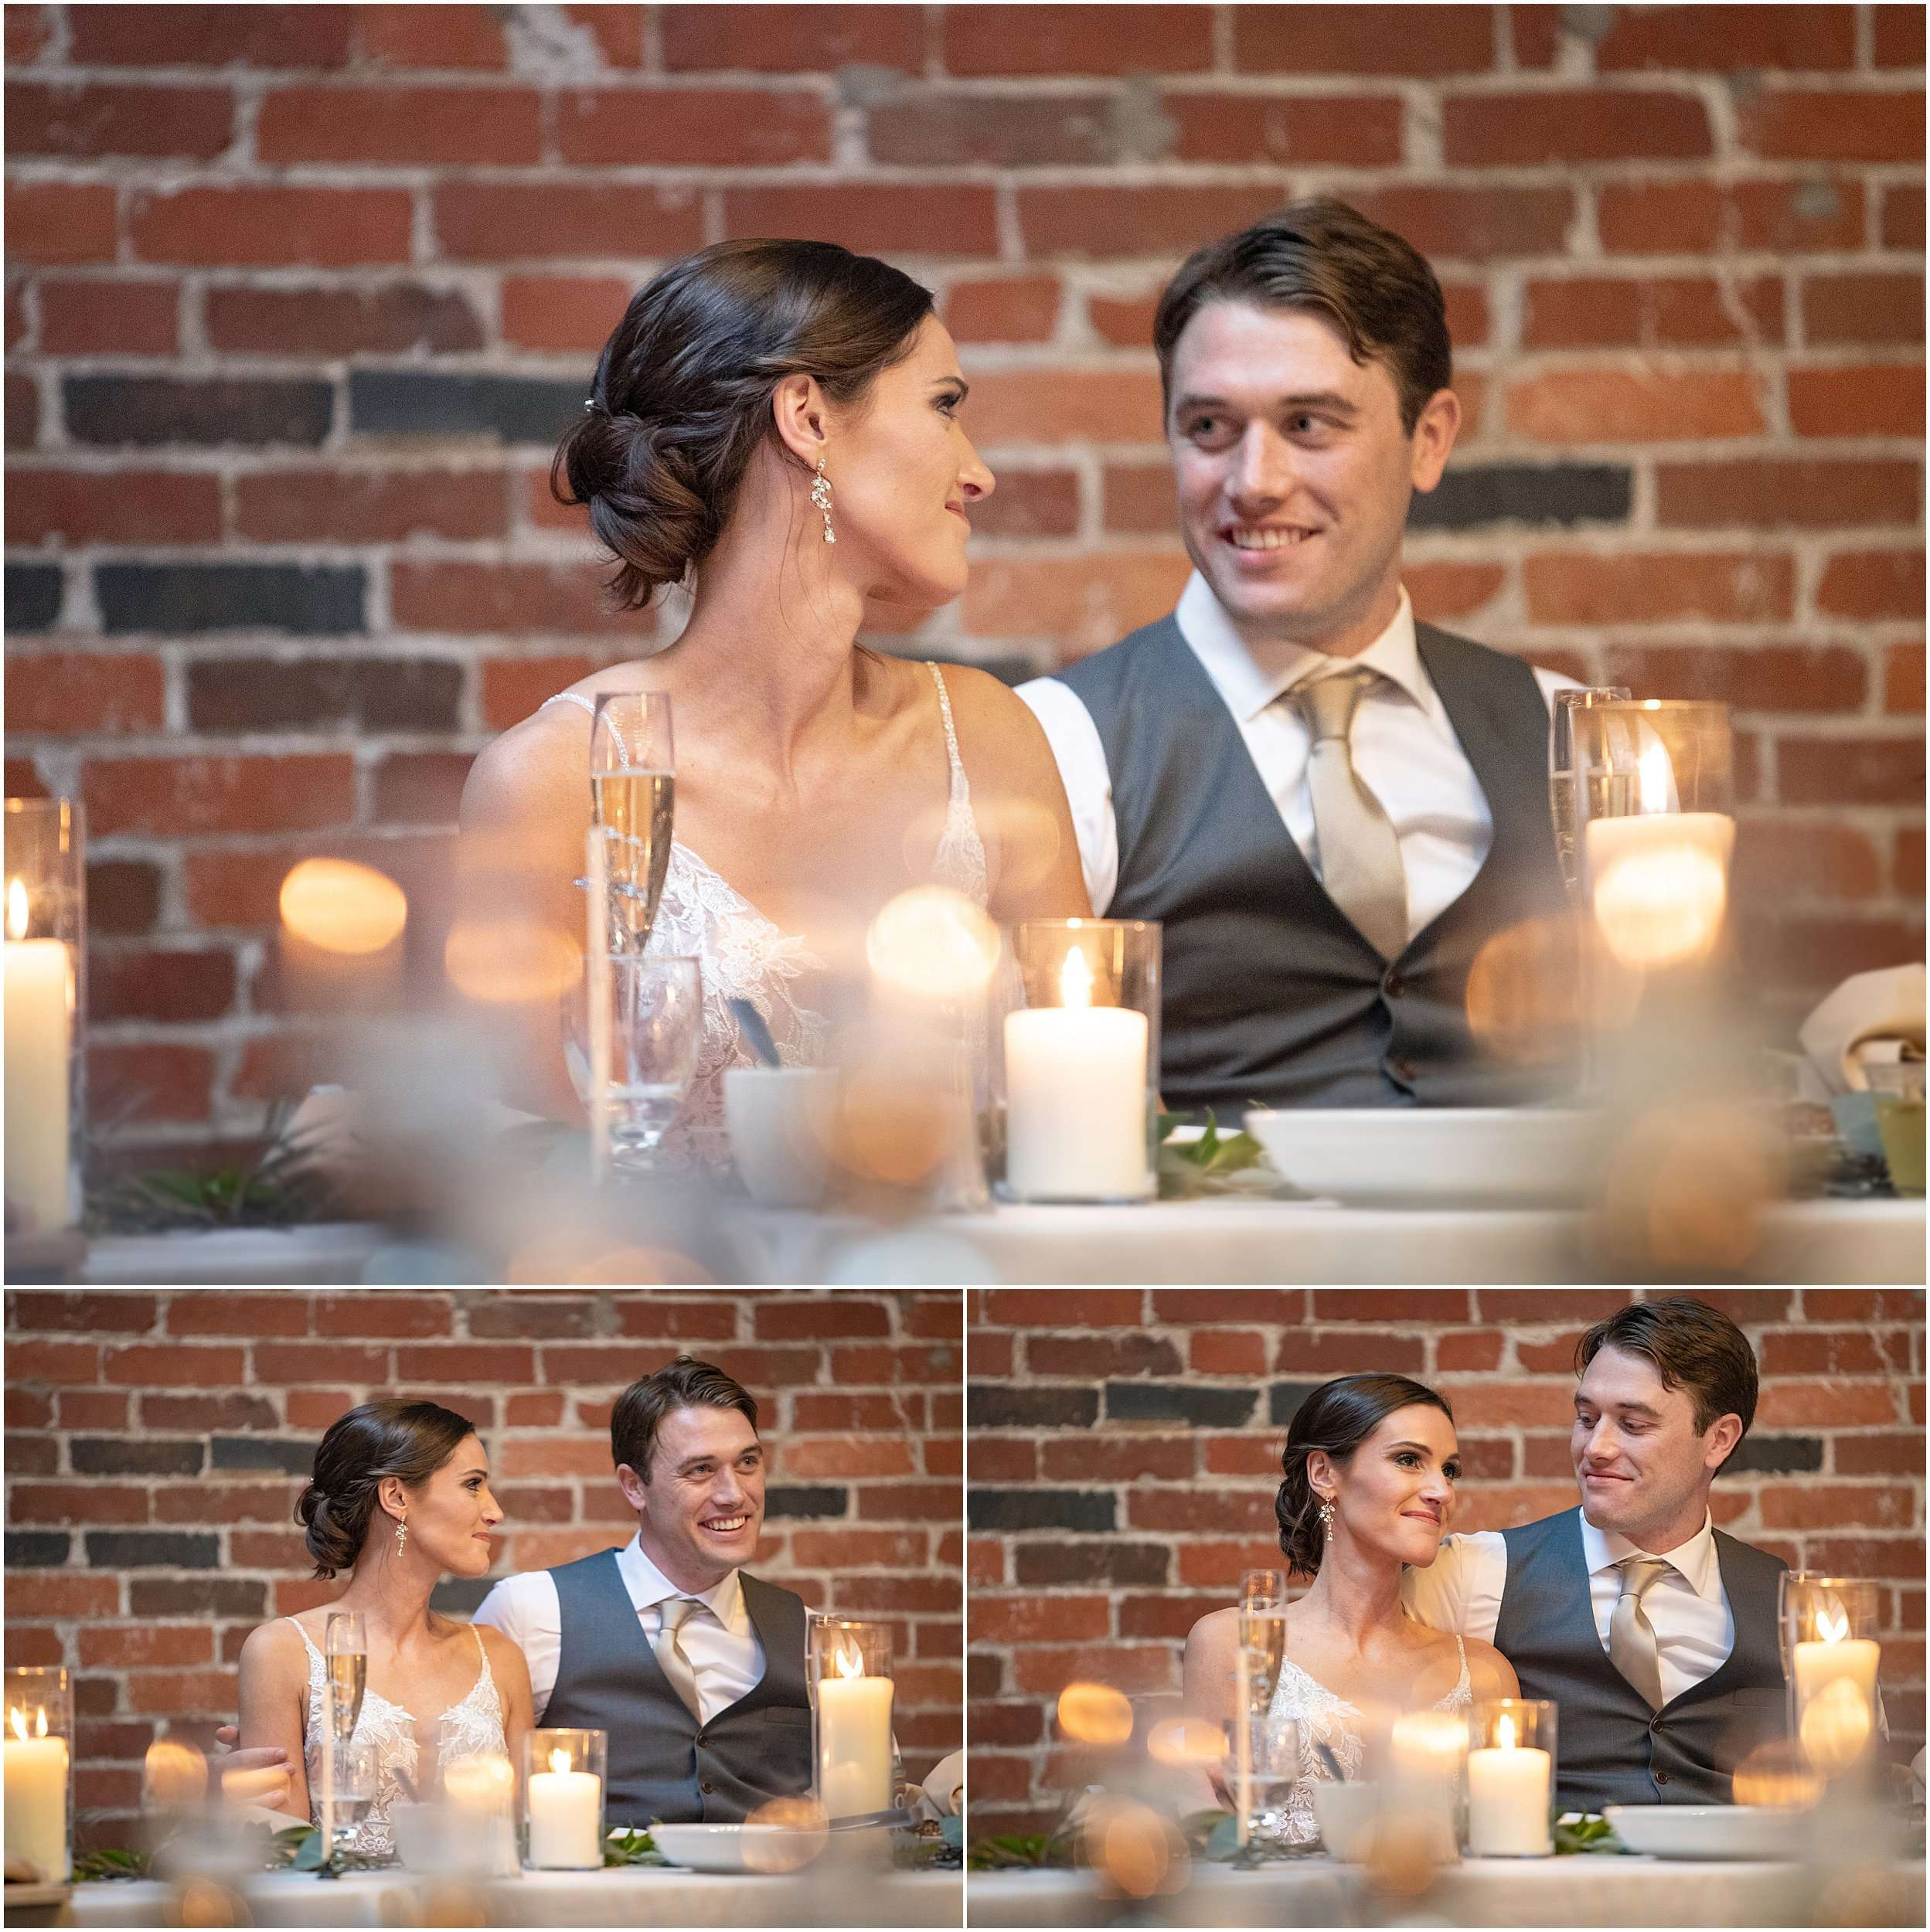 a series of images of a caucasian bride and groom couple sitting at a table exchanging affectionate glances. There is a brick wall behind them and glowing candles on the table in the foreground.